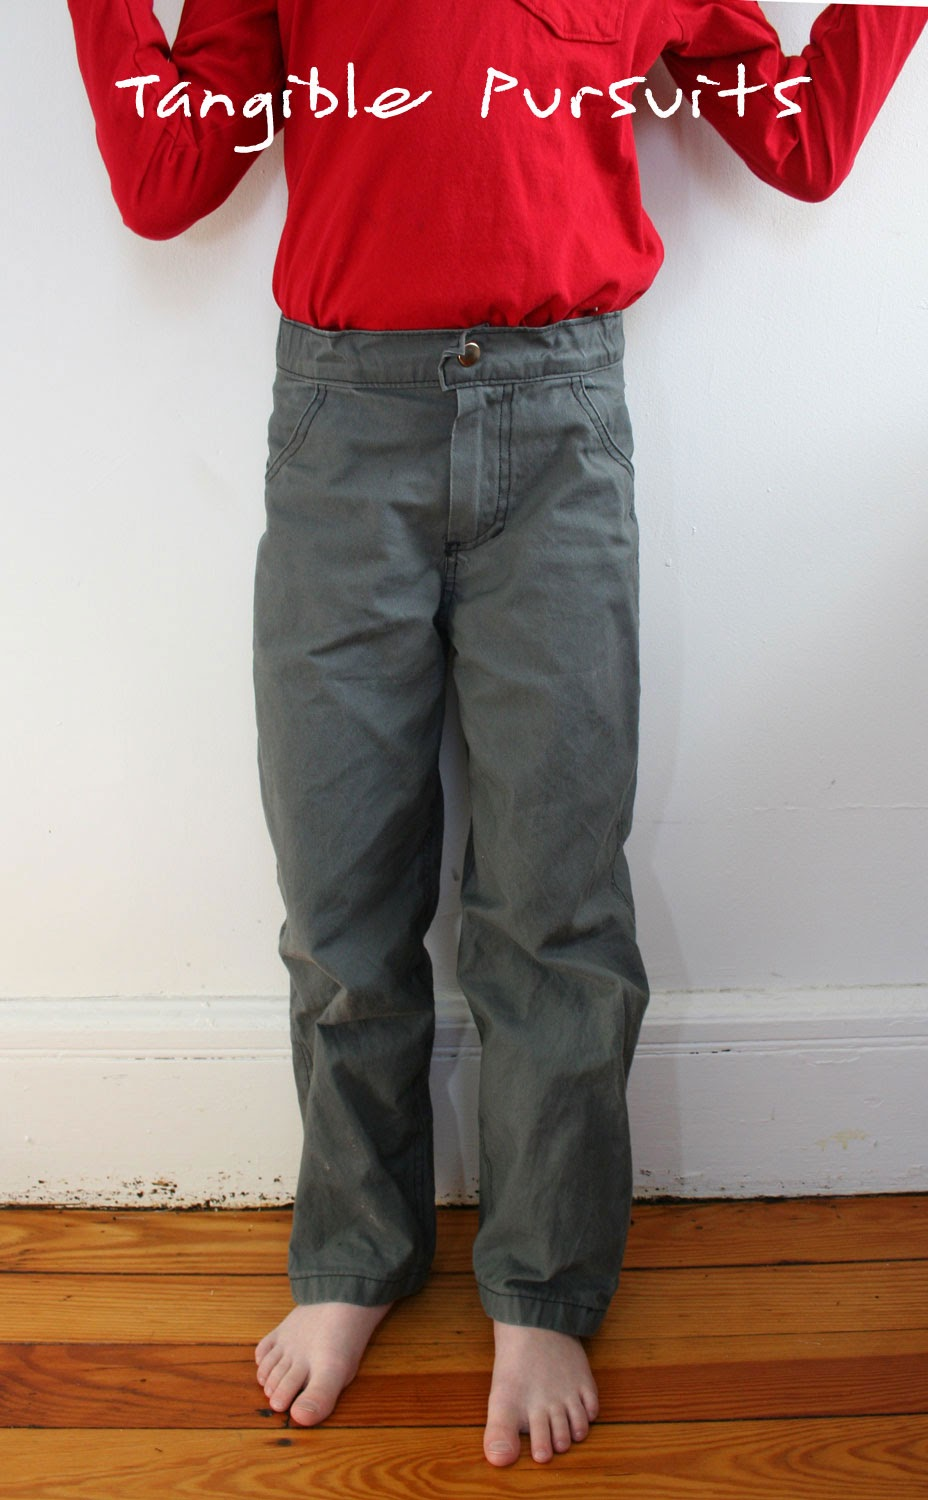 Tangible Pursuits: Grey Twill Pants with Jeans Styling